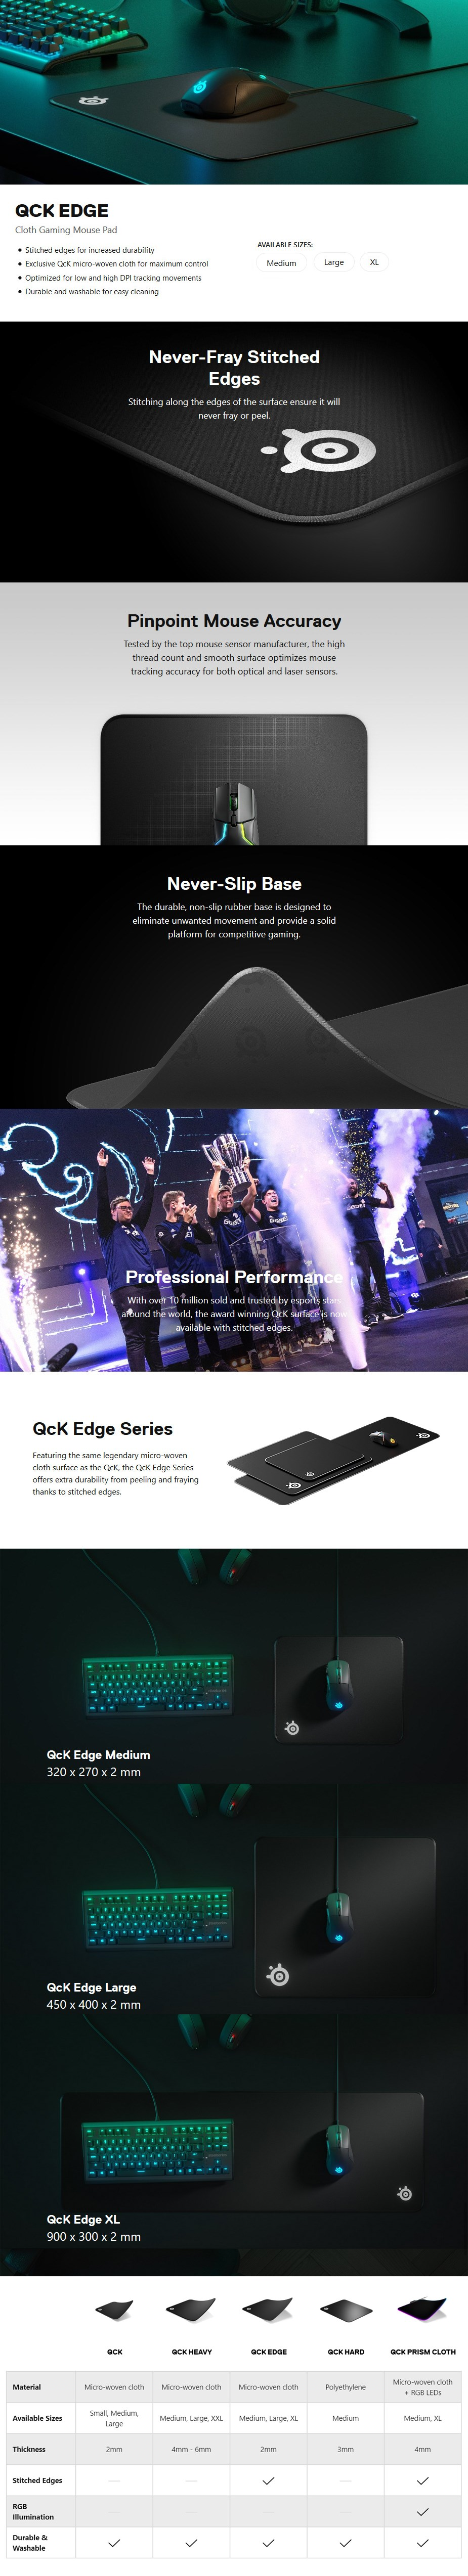 SteelSeries QcK Edge Gaming Mouse Pad - Extra Large - Desktop Overview 1